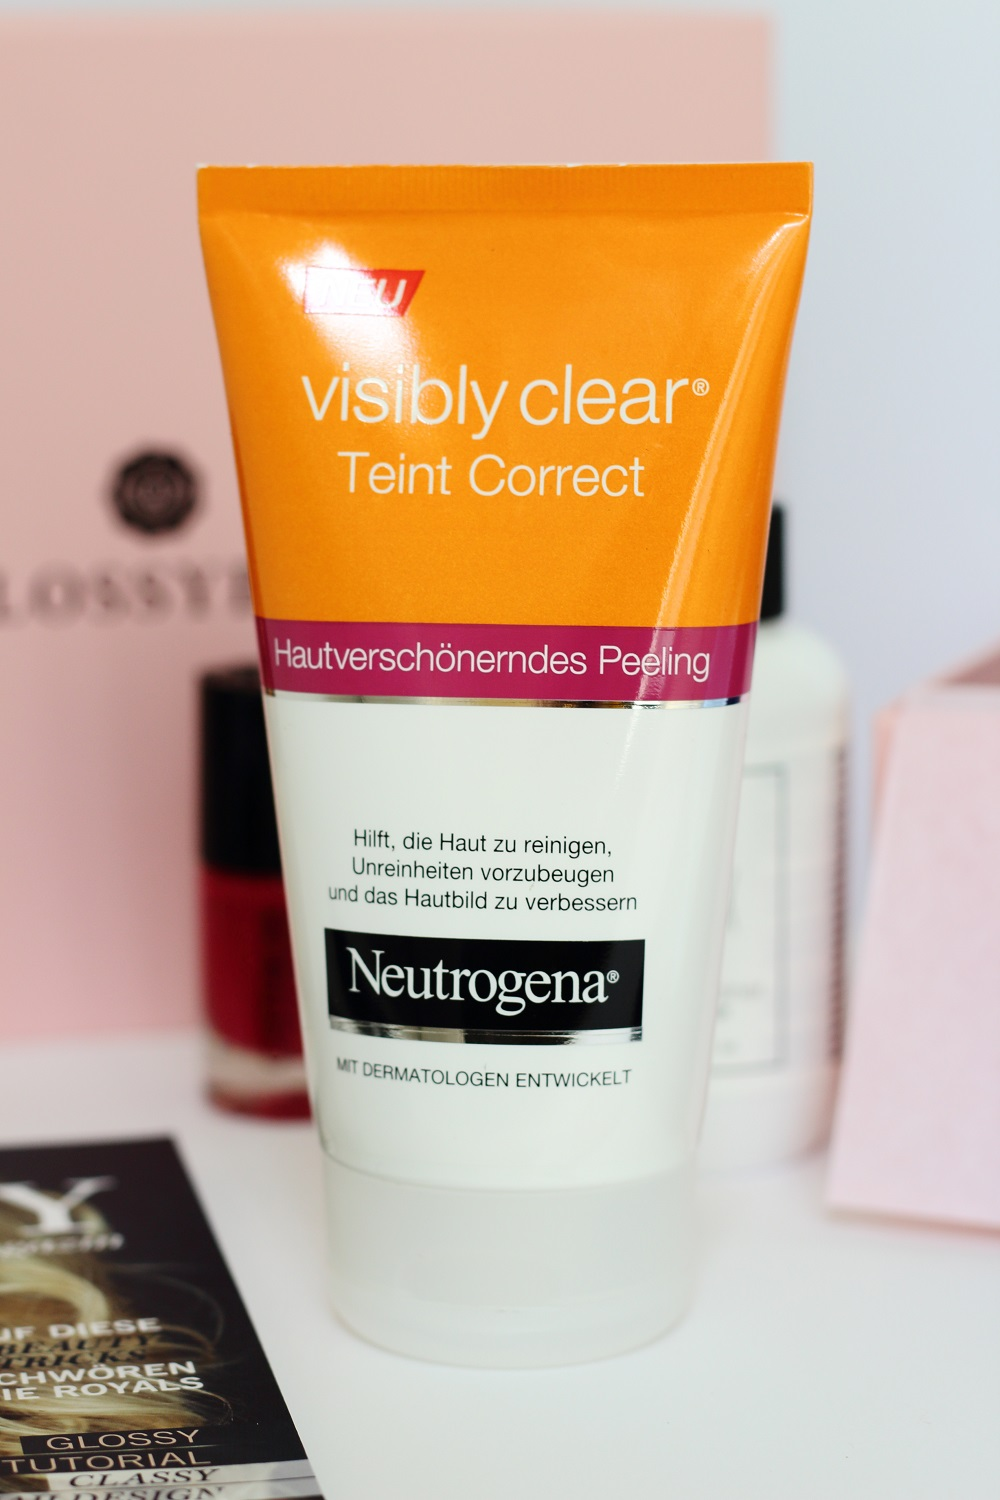 Glossybox Mai 2016 Classy Queen Edition - Neutrogena Visibly Clear Teint Correct Peeling